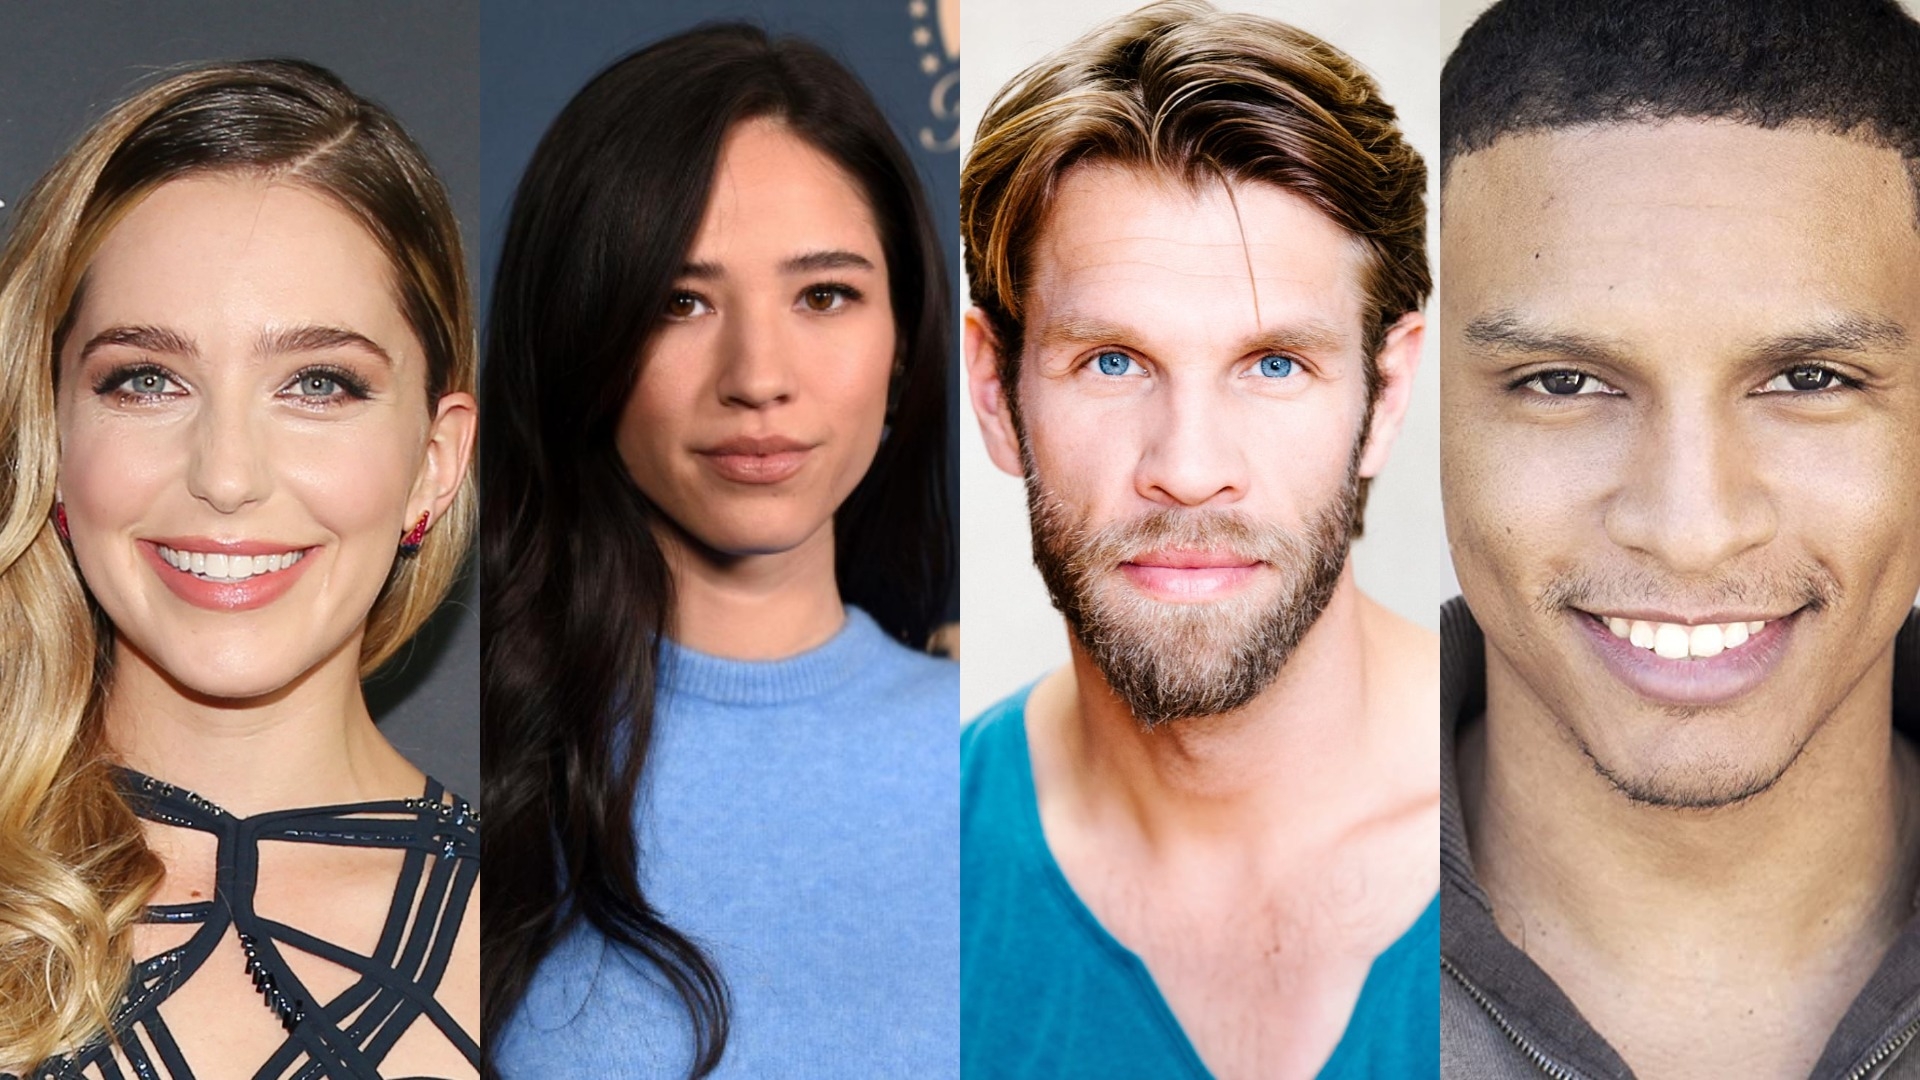 Deadline is exclusively reporting that Jessica Rothe, Kelsey Asbille, Marc Rissmann and Will Dalton have signed up to star in New Regency television series Gaslight, which is an adaptation of the QCode podcast of the same name.